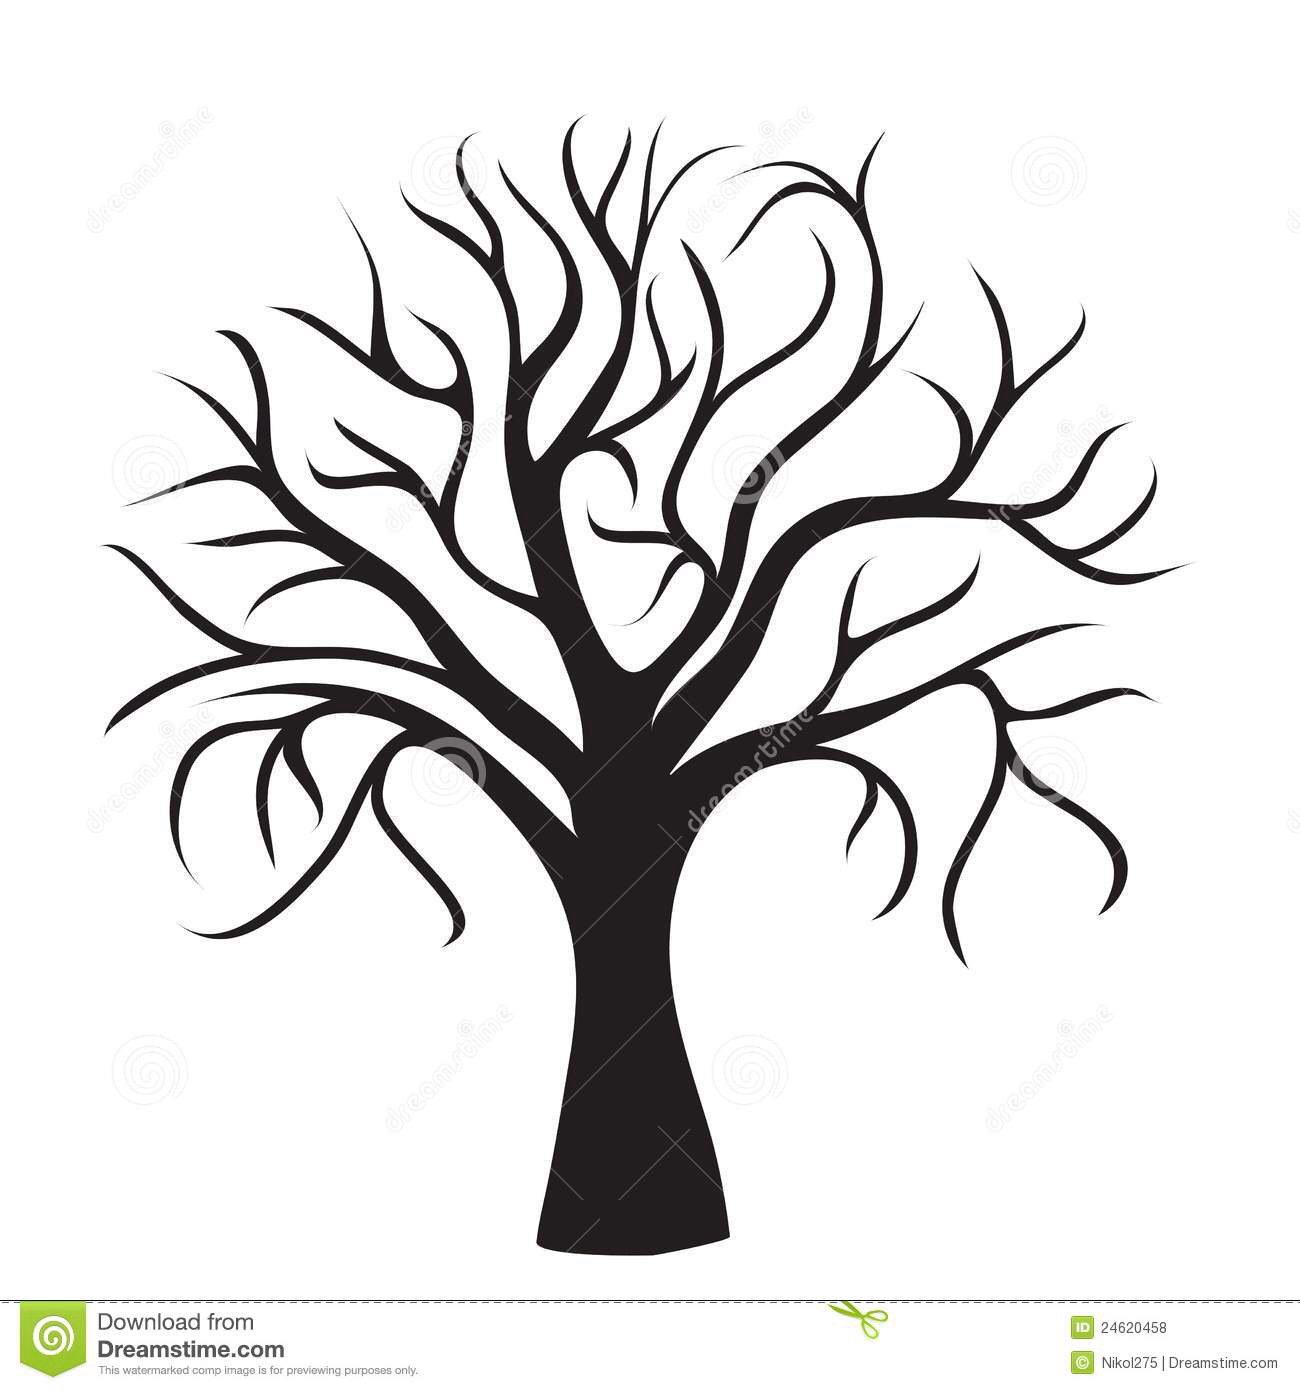 Tree Silhouettes Royalty Free Cliparts, Vectors, And Stock.